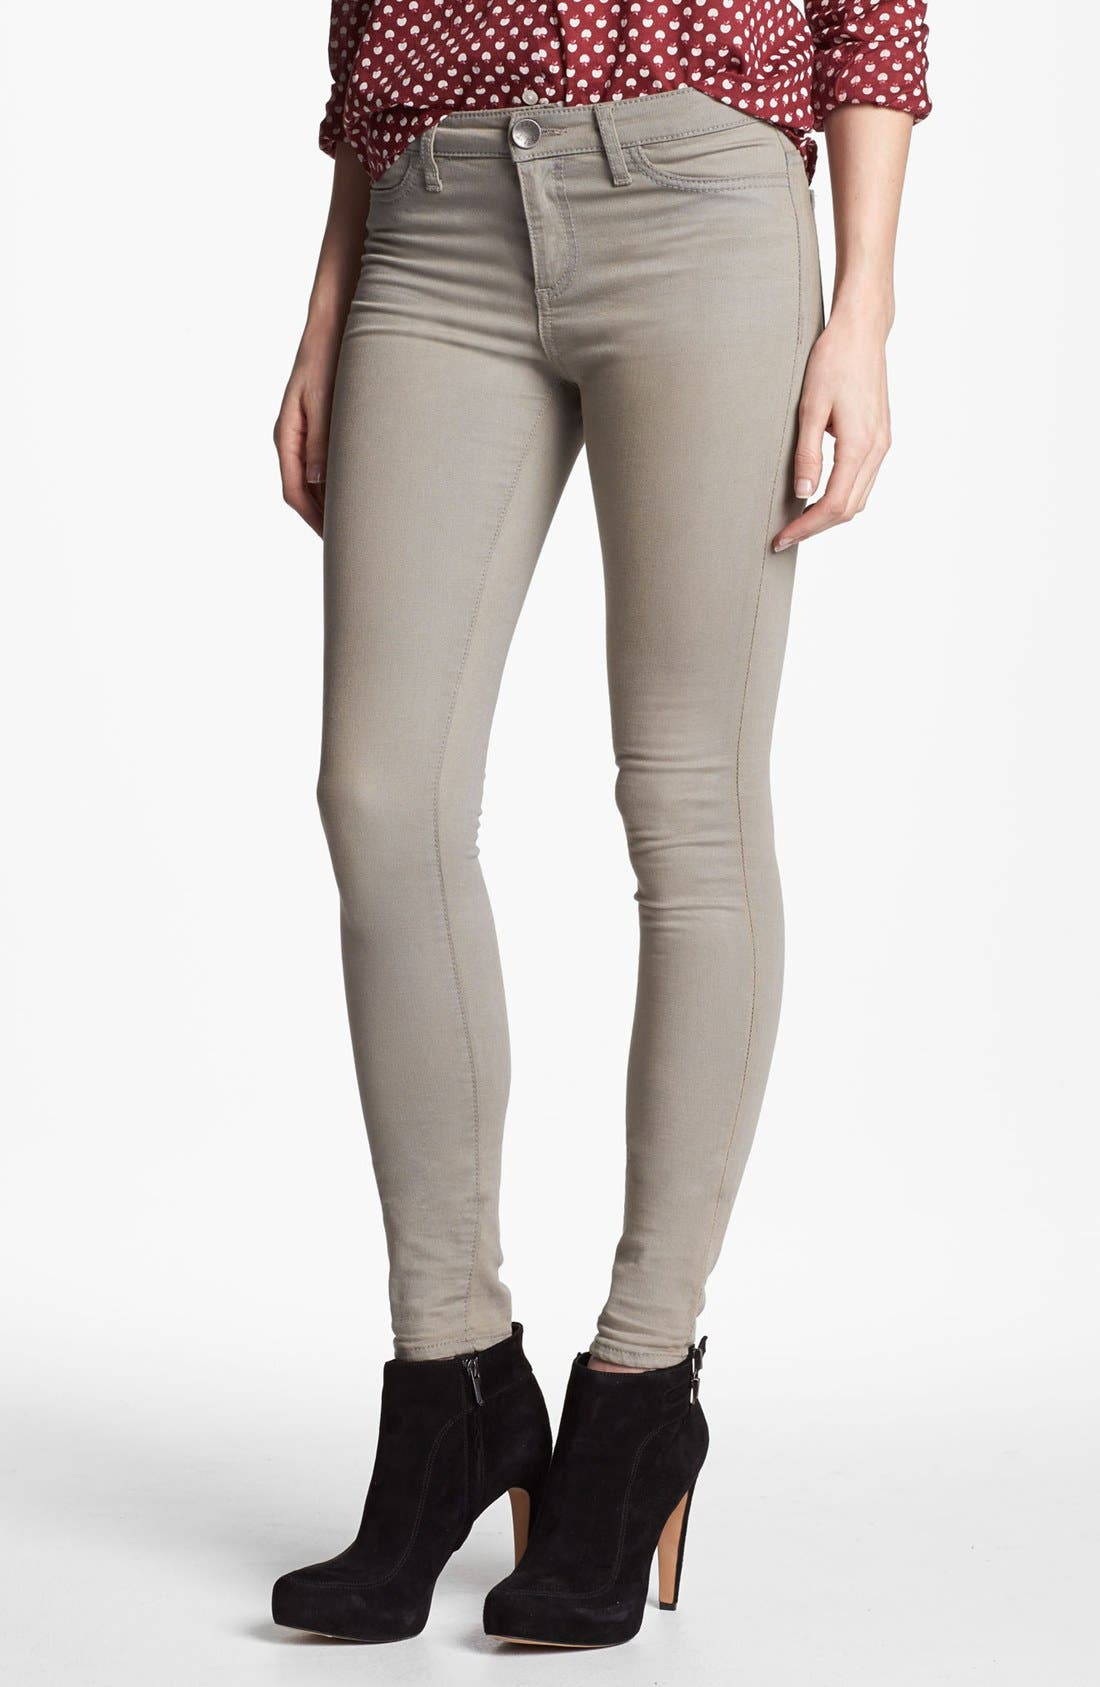 Alternate Image 1 Selected - KUT from the Kloth 'Jennifer' Skinny Jeans (Taupe Grey)